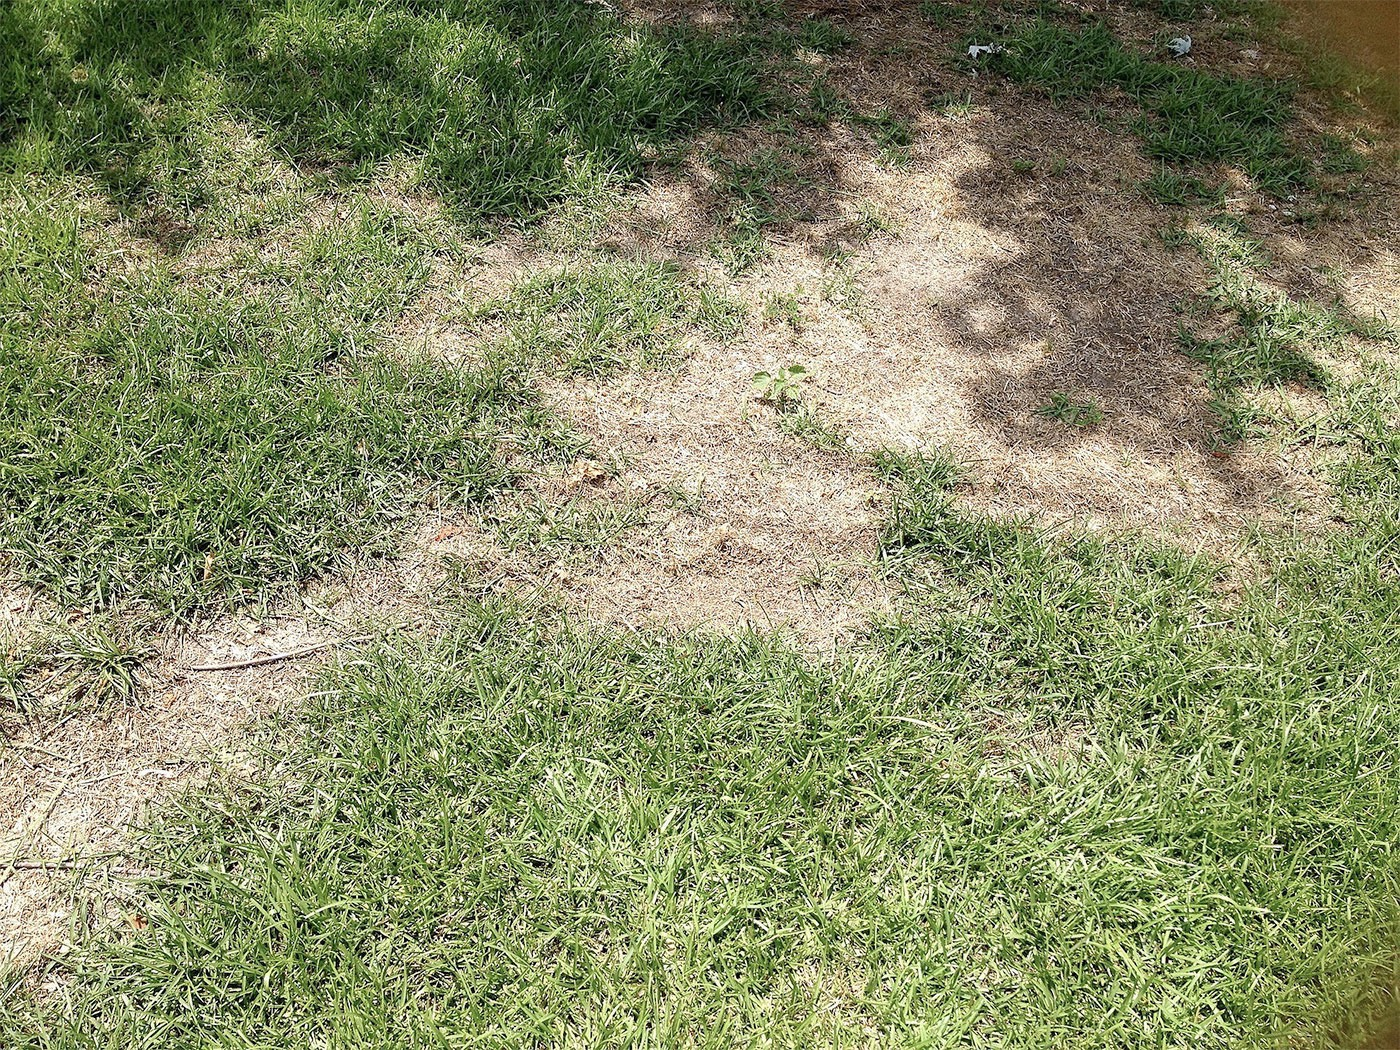 Lawn being treated to optimize growth before summer